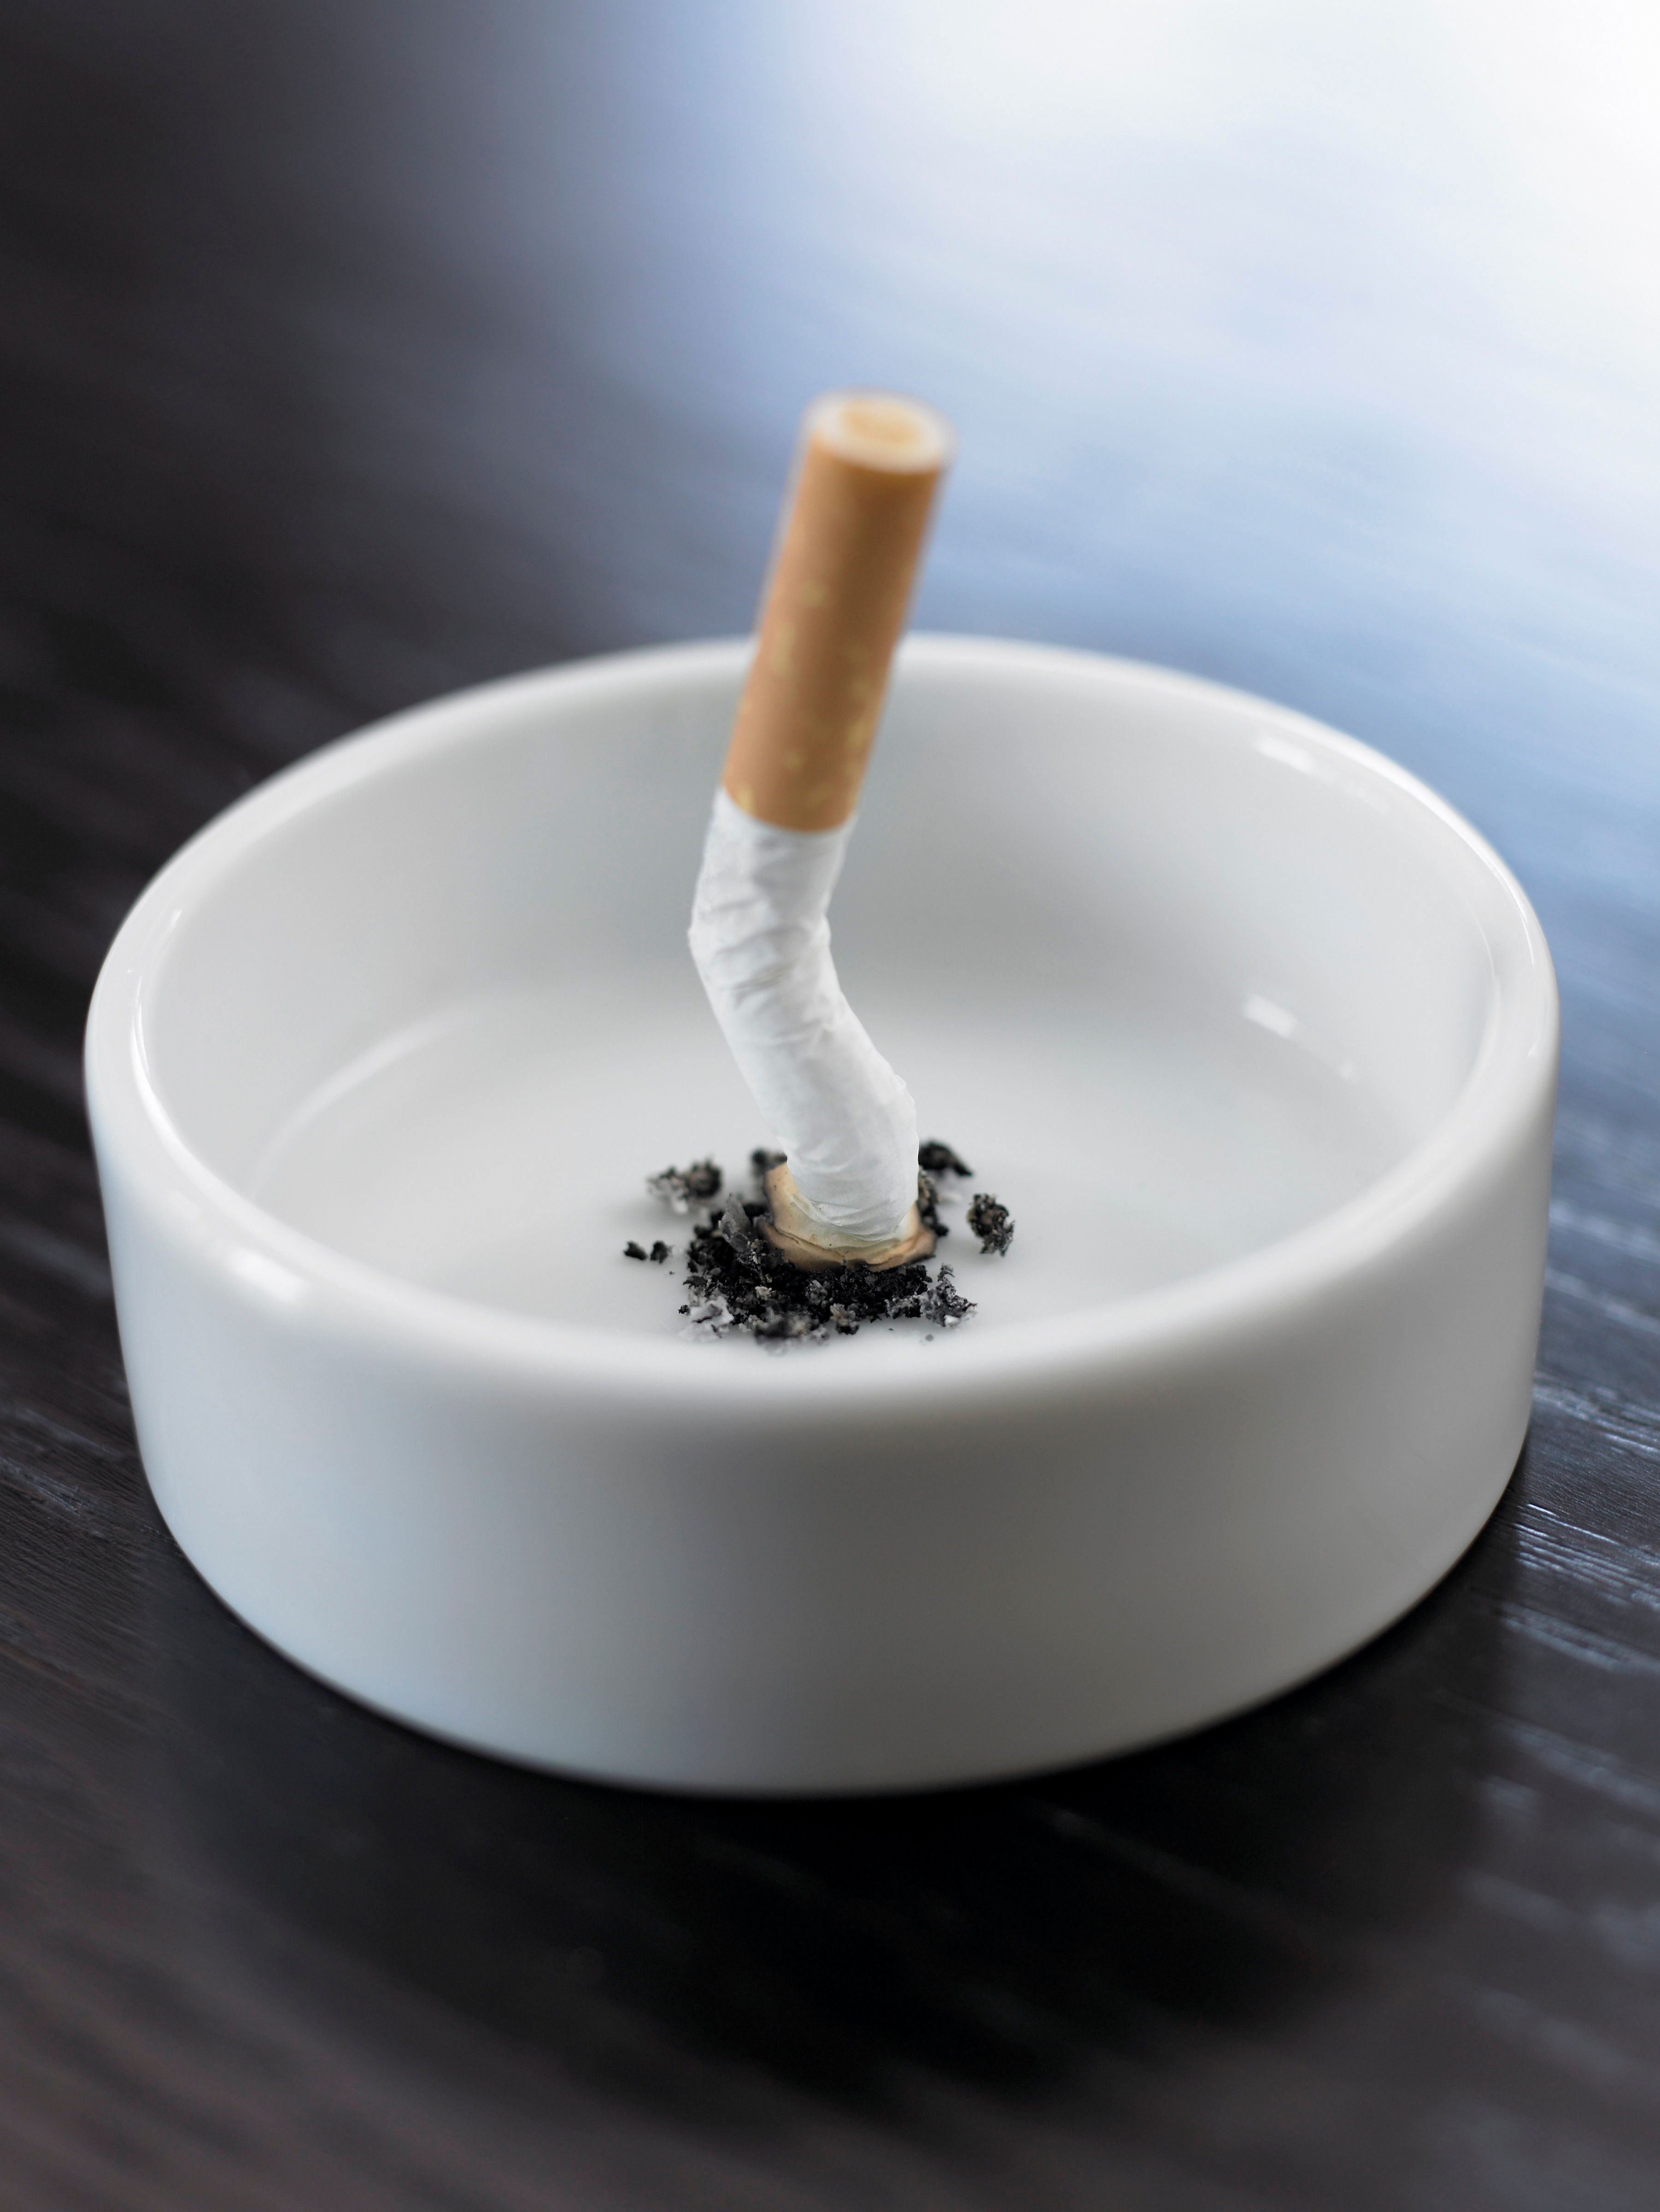 A new study has found that cigarette smoking damages users' DNA, with its effects seen more than 30 years after they quit.